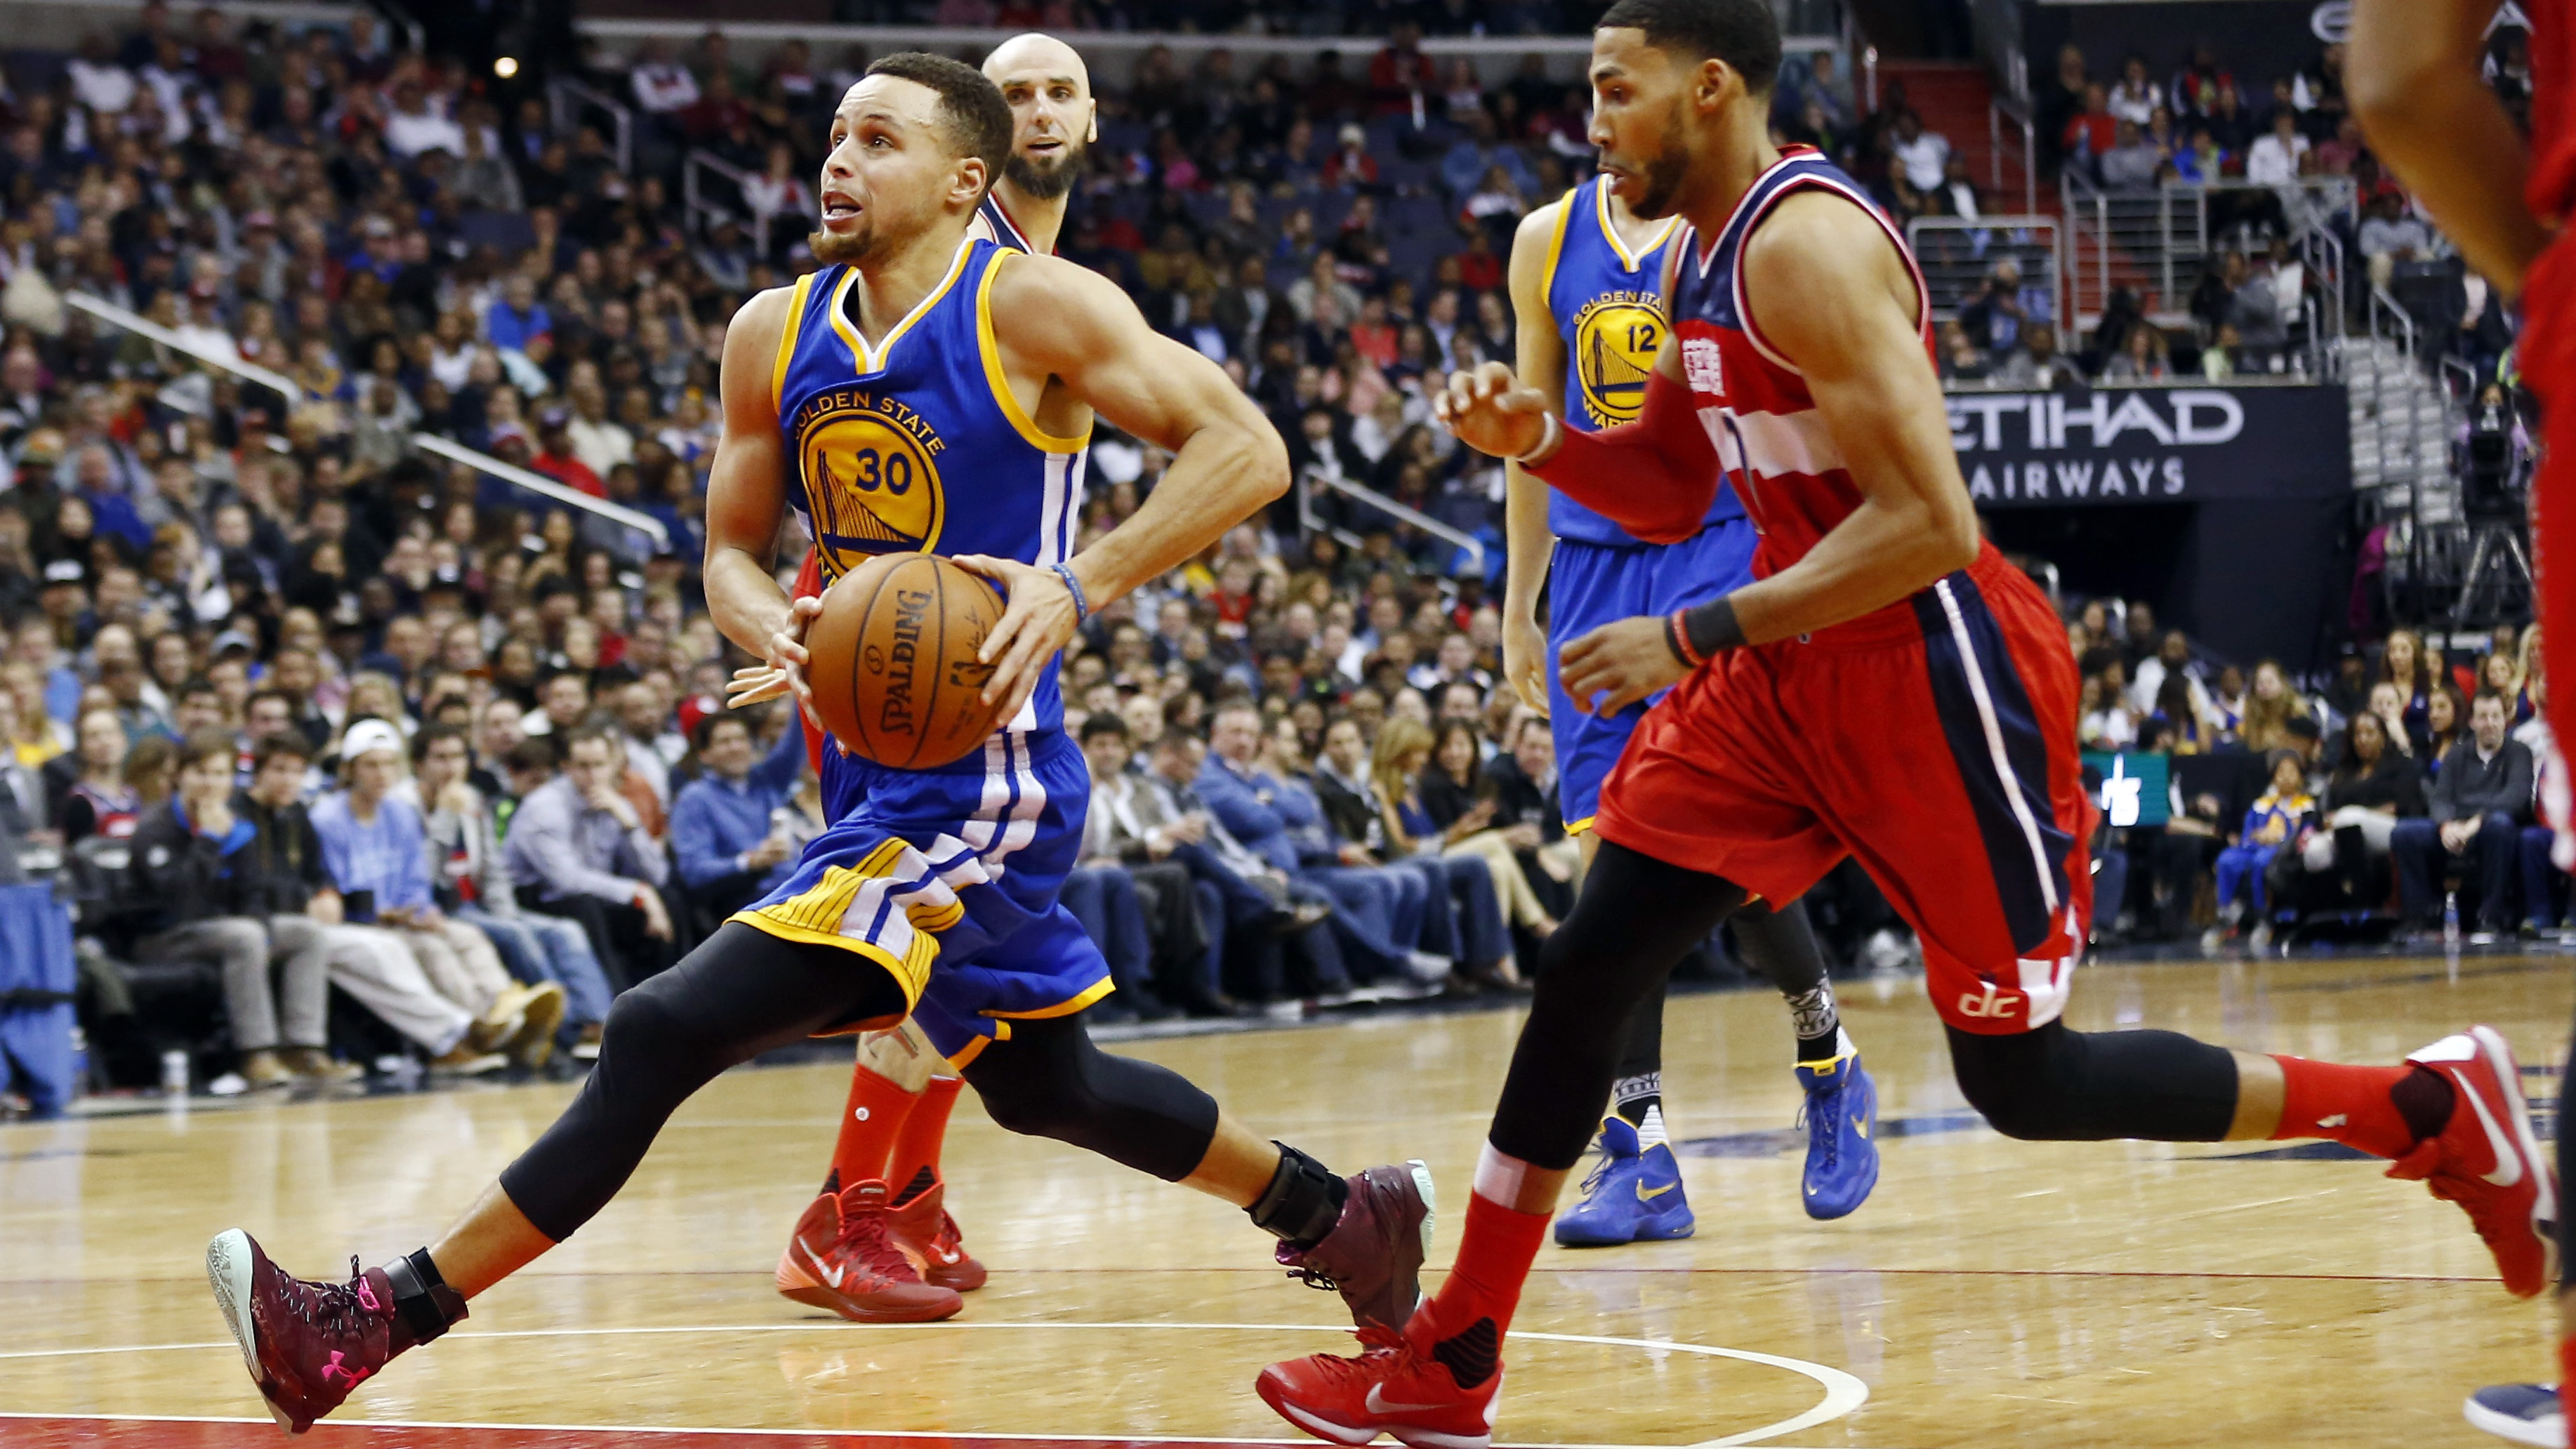 Feb 3, 2016; Washington, DC, USA; Golden State Warriors guard Stephen Curry (30) drives to the basket past Washington Wizards guard Garrett Temple (17) in the second quarter at Verizon Center